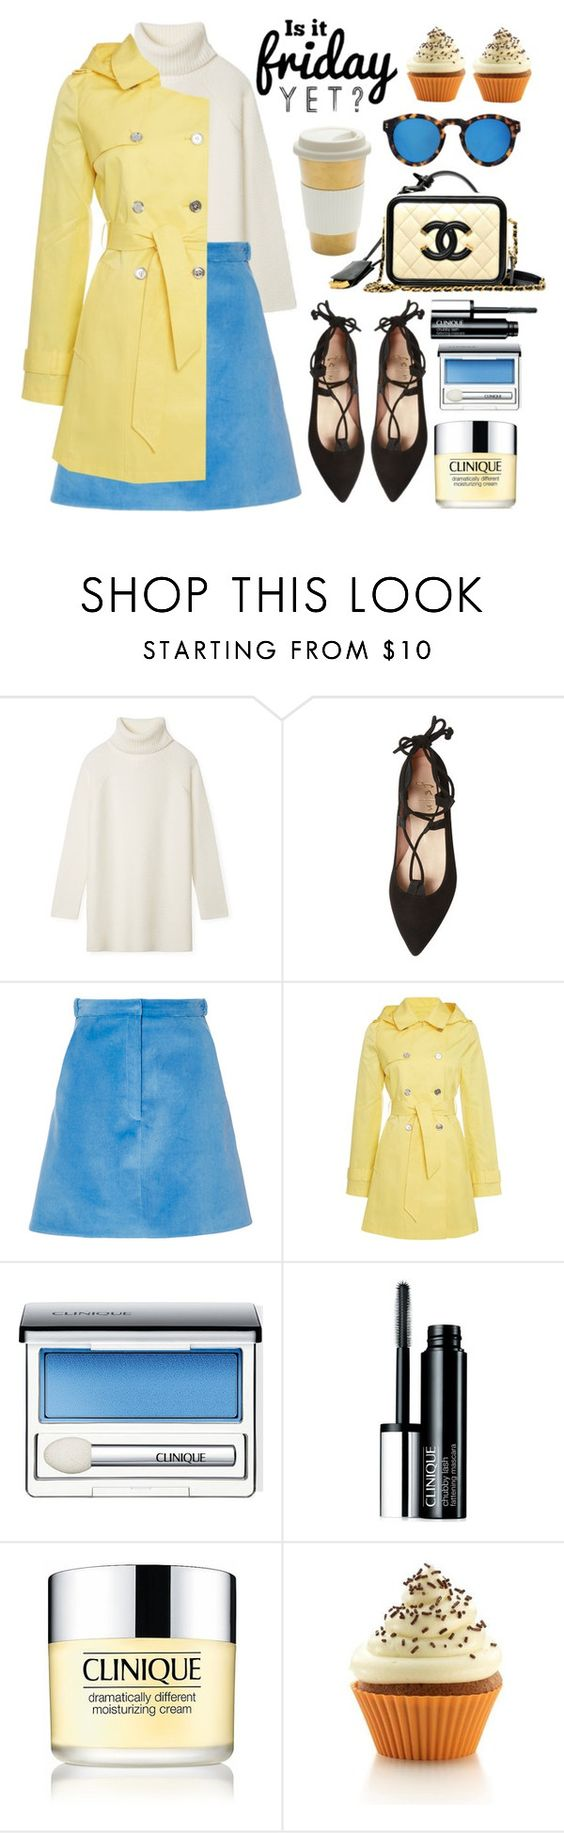 """""""Is it friday yet?"""" by alaria ❤ liked on Polyvore featuring Tory Burch, French Sole FS/NY, Carven, Lauren Ralph Lauren, Clinique, Lékué, Illesteva, women's clothing, women's fashion and women"""